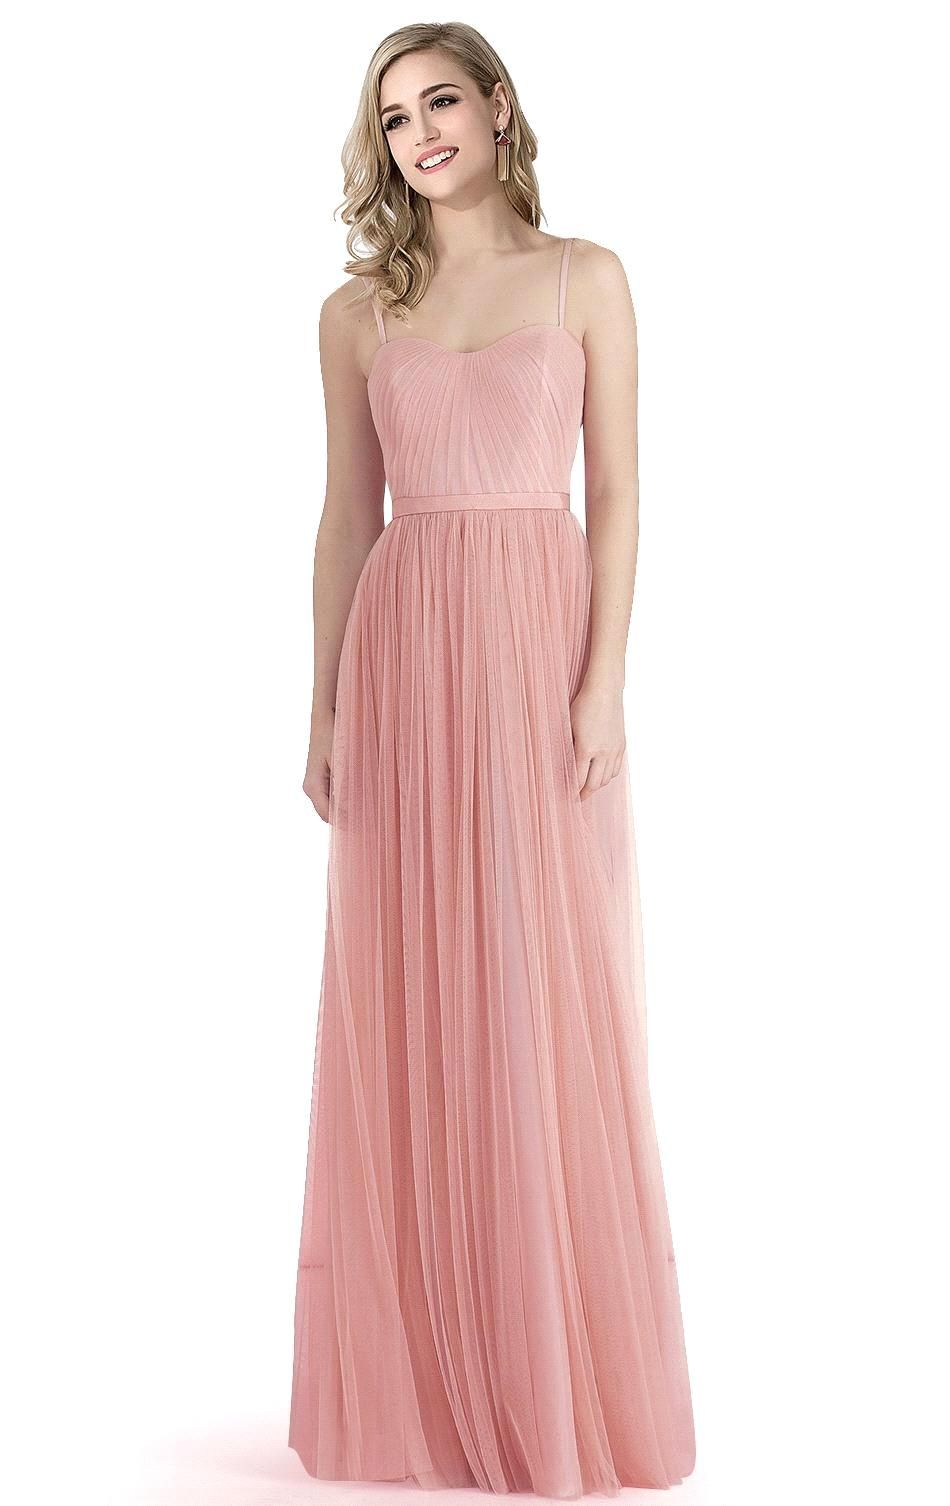 Elegant Sweetheart Ruffles Sash Bridesmaid Dress